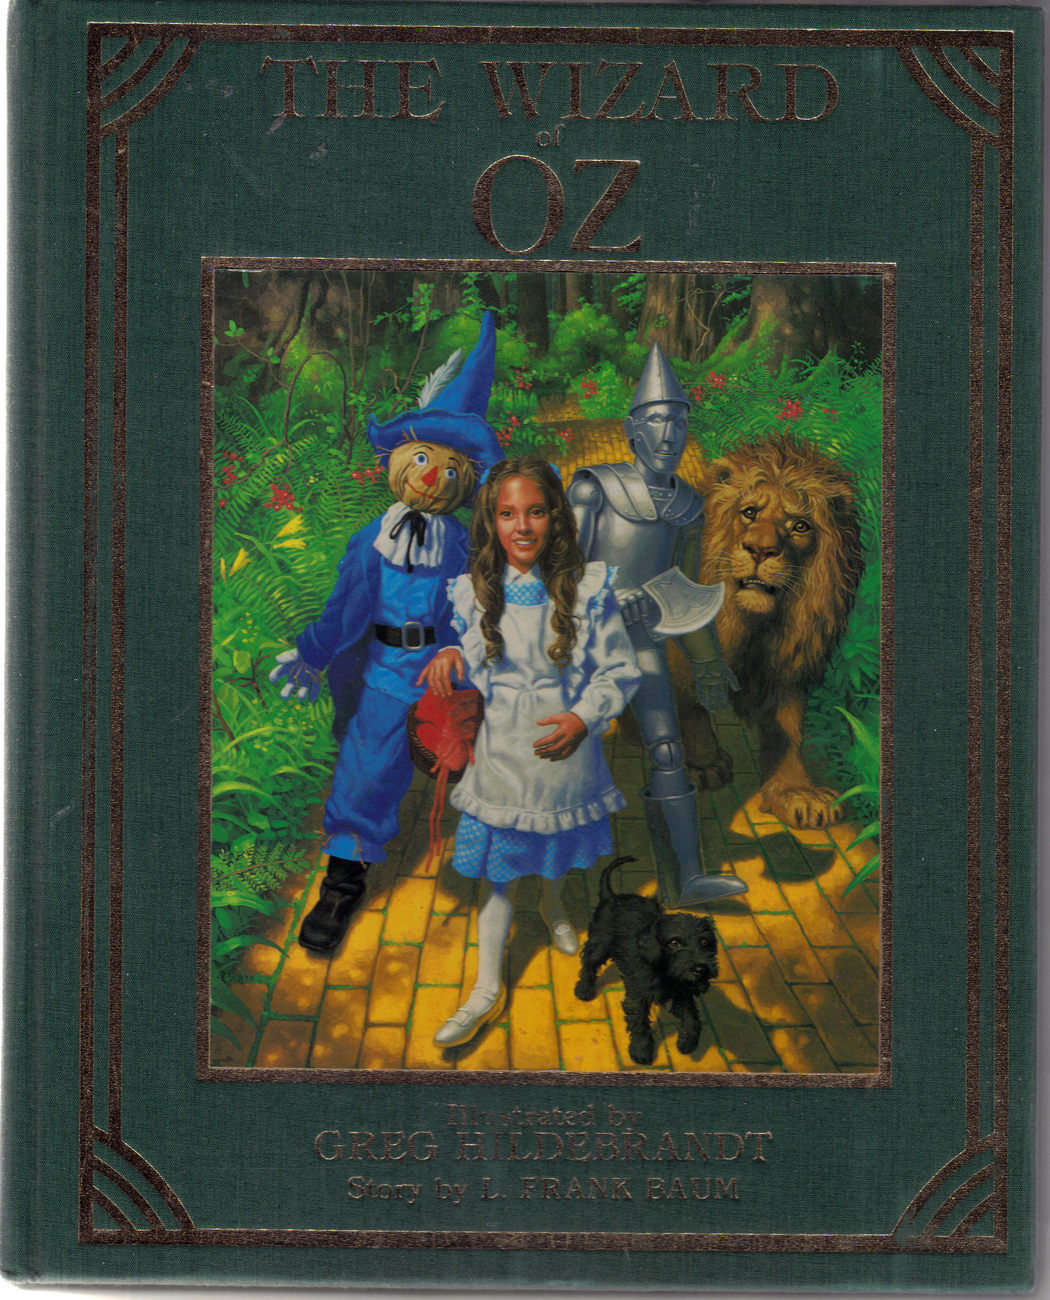 My introduction to Oz and the art of W.W. Denslow